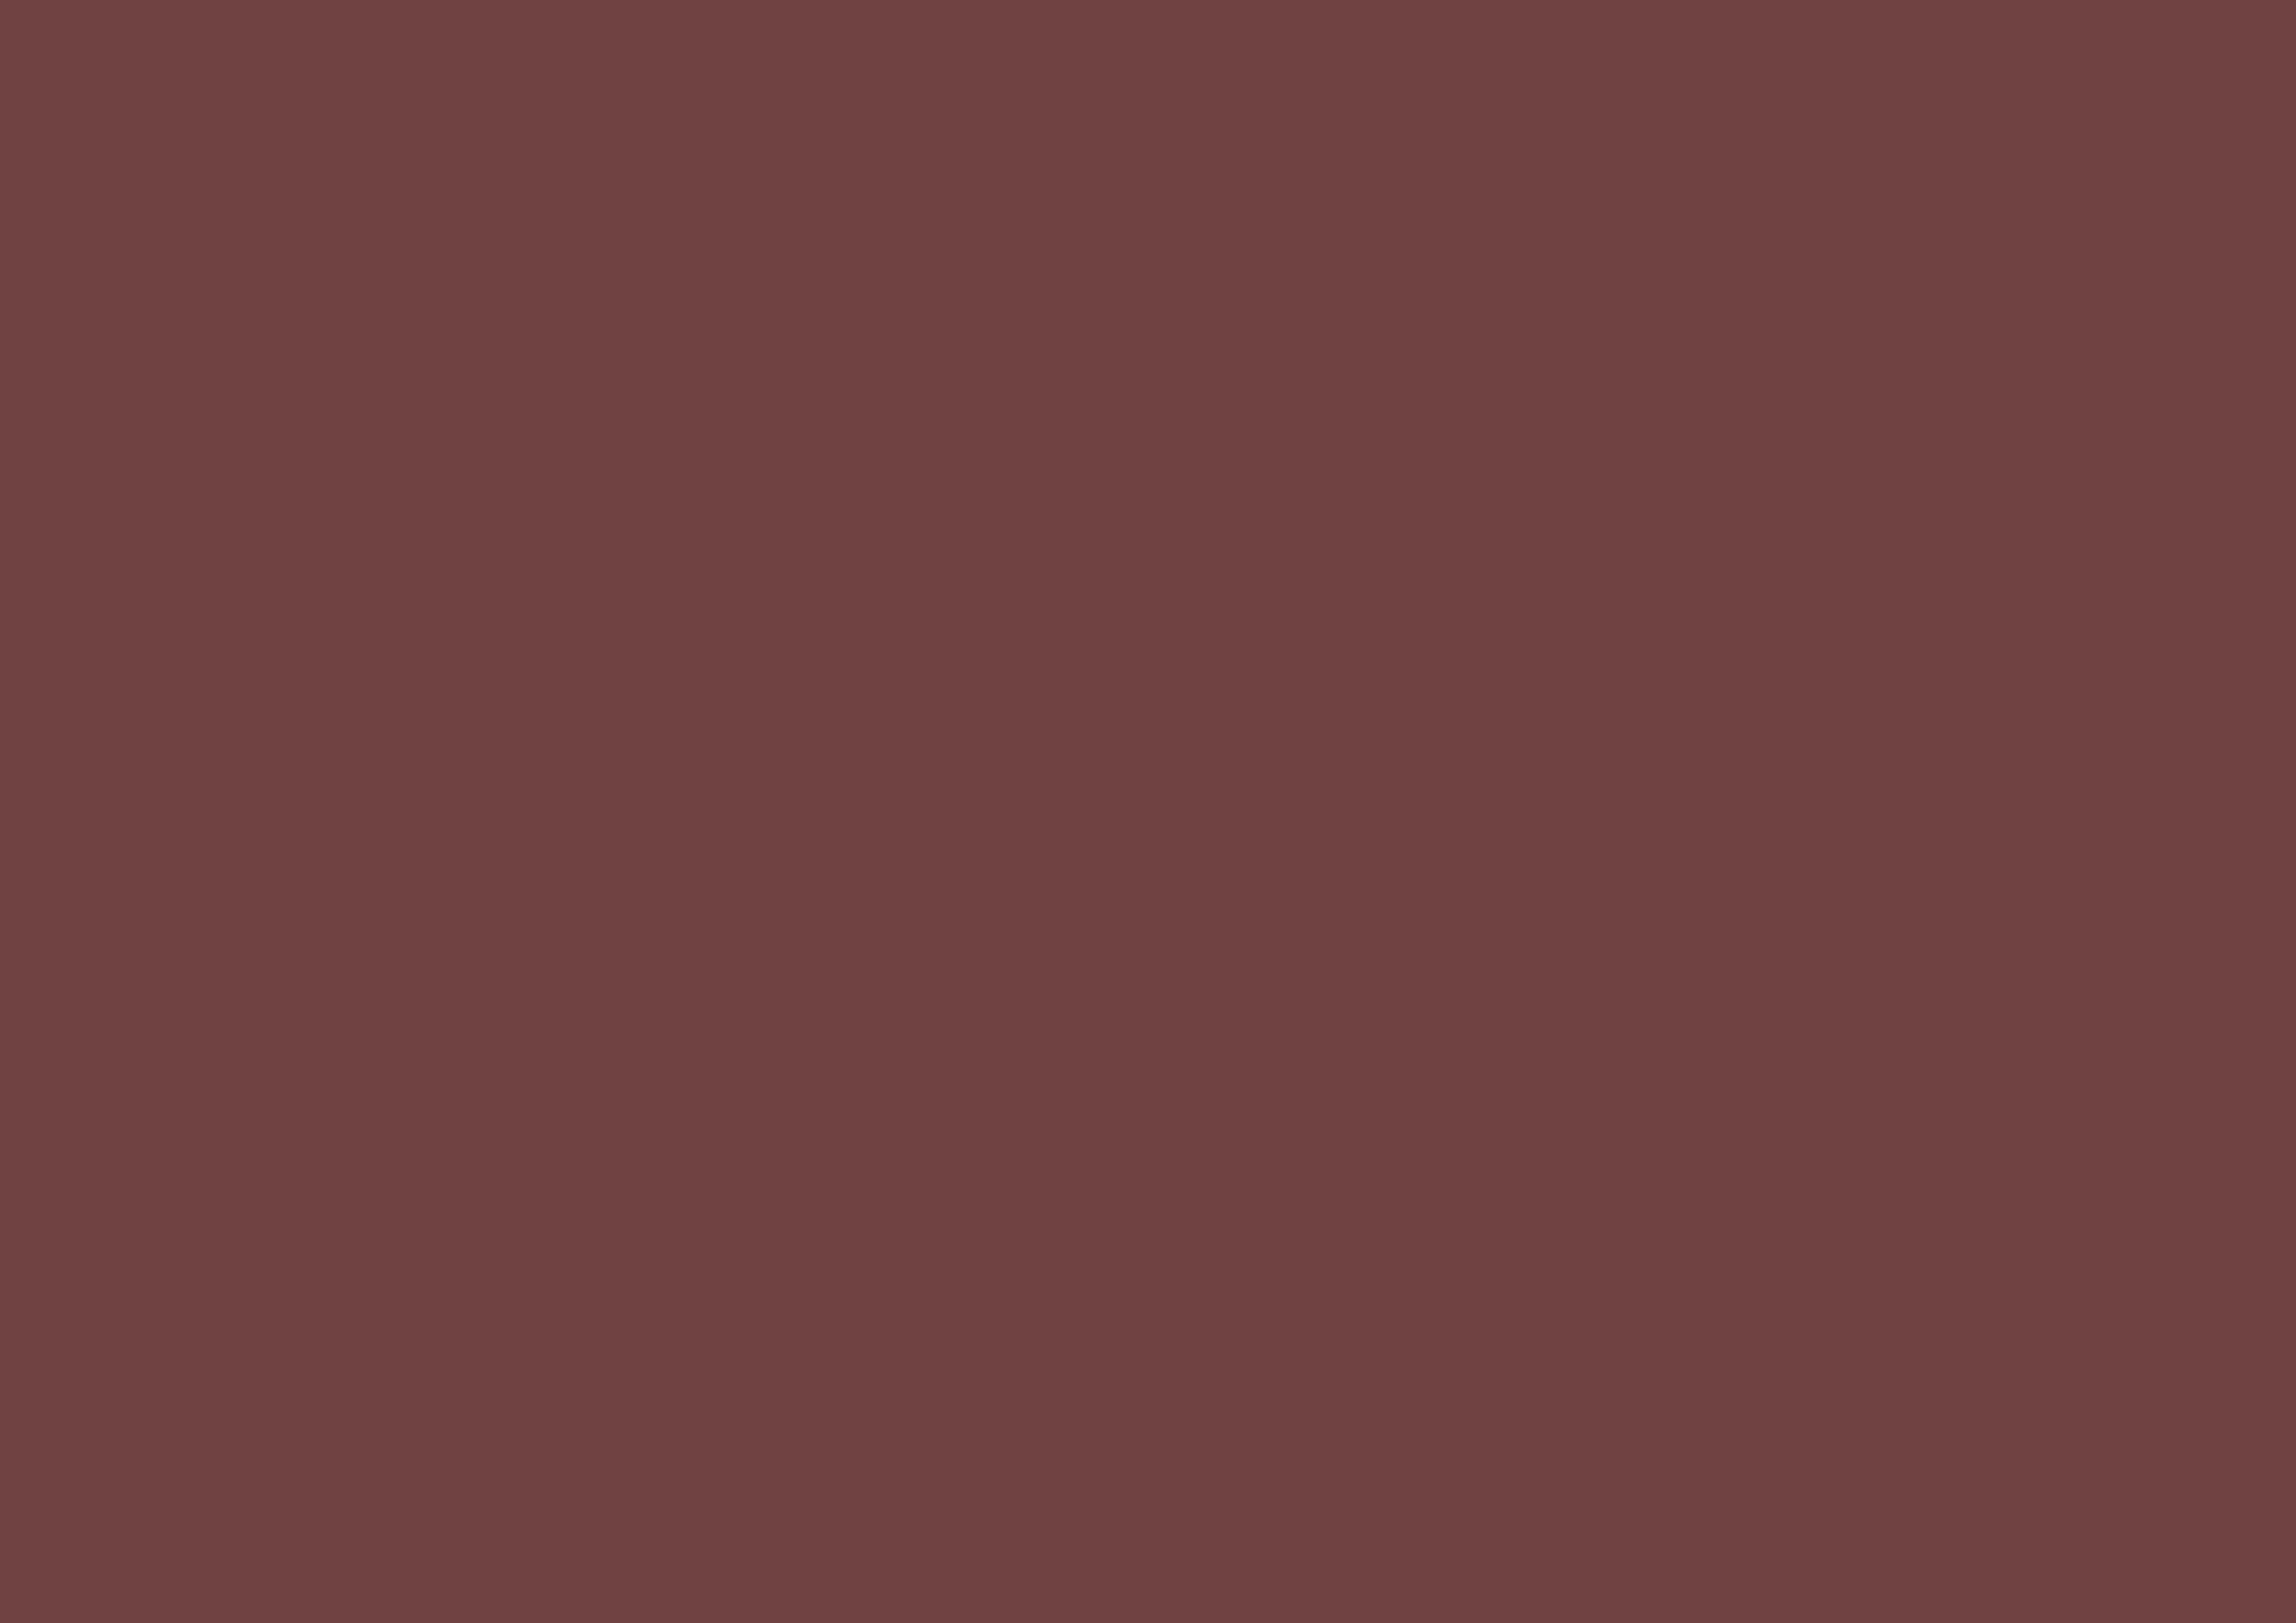 3508x2480 Deep Coffee Solid Color Background